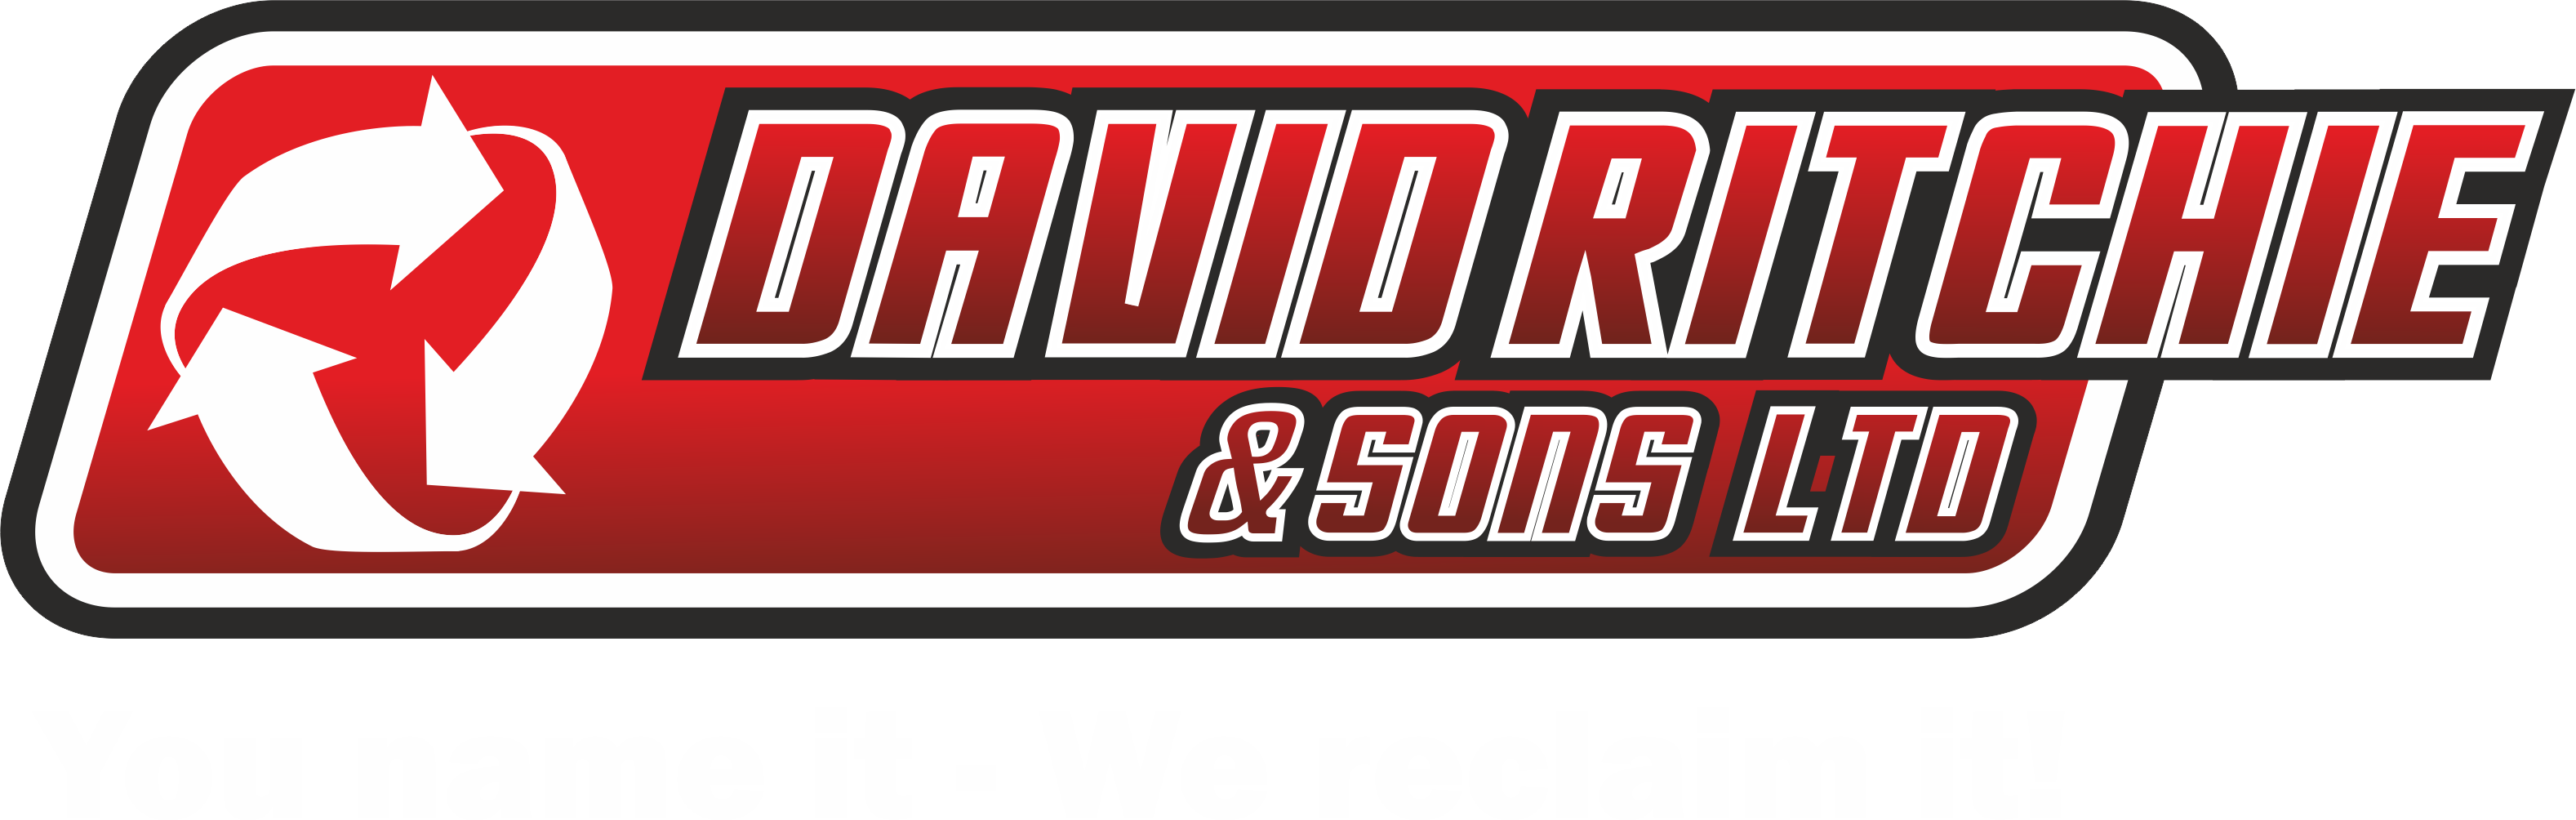 David Ritchie and Sons